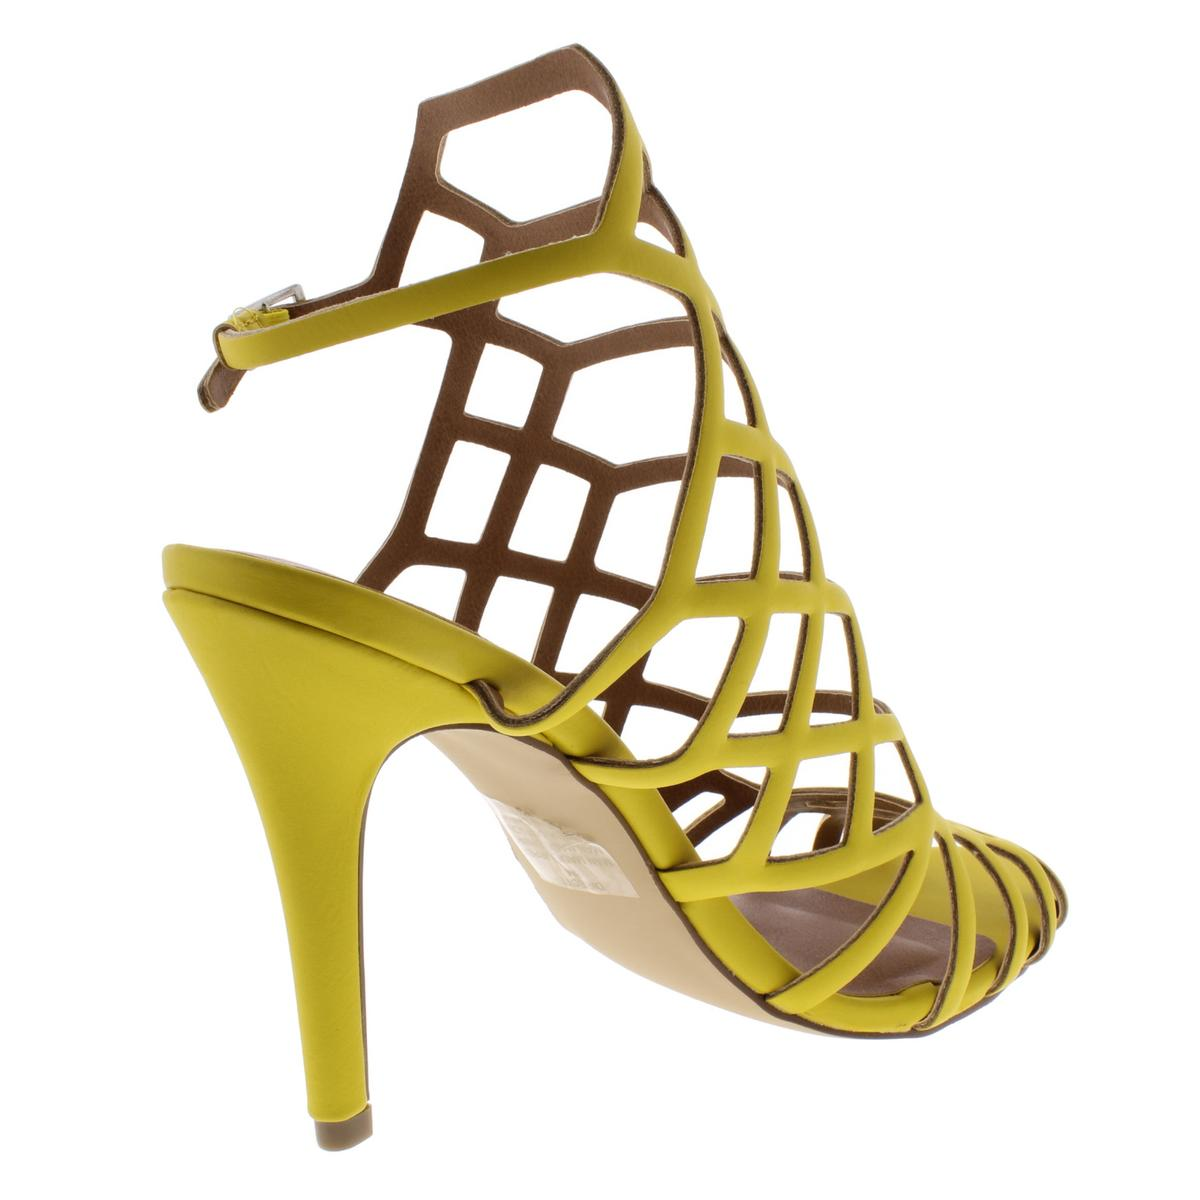 ed2f6cea72b Details about Madden Girl by Steve Madden Womens Directt Caged Dress  Sandals Shoes BHFO 6443